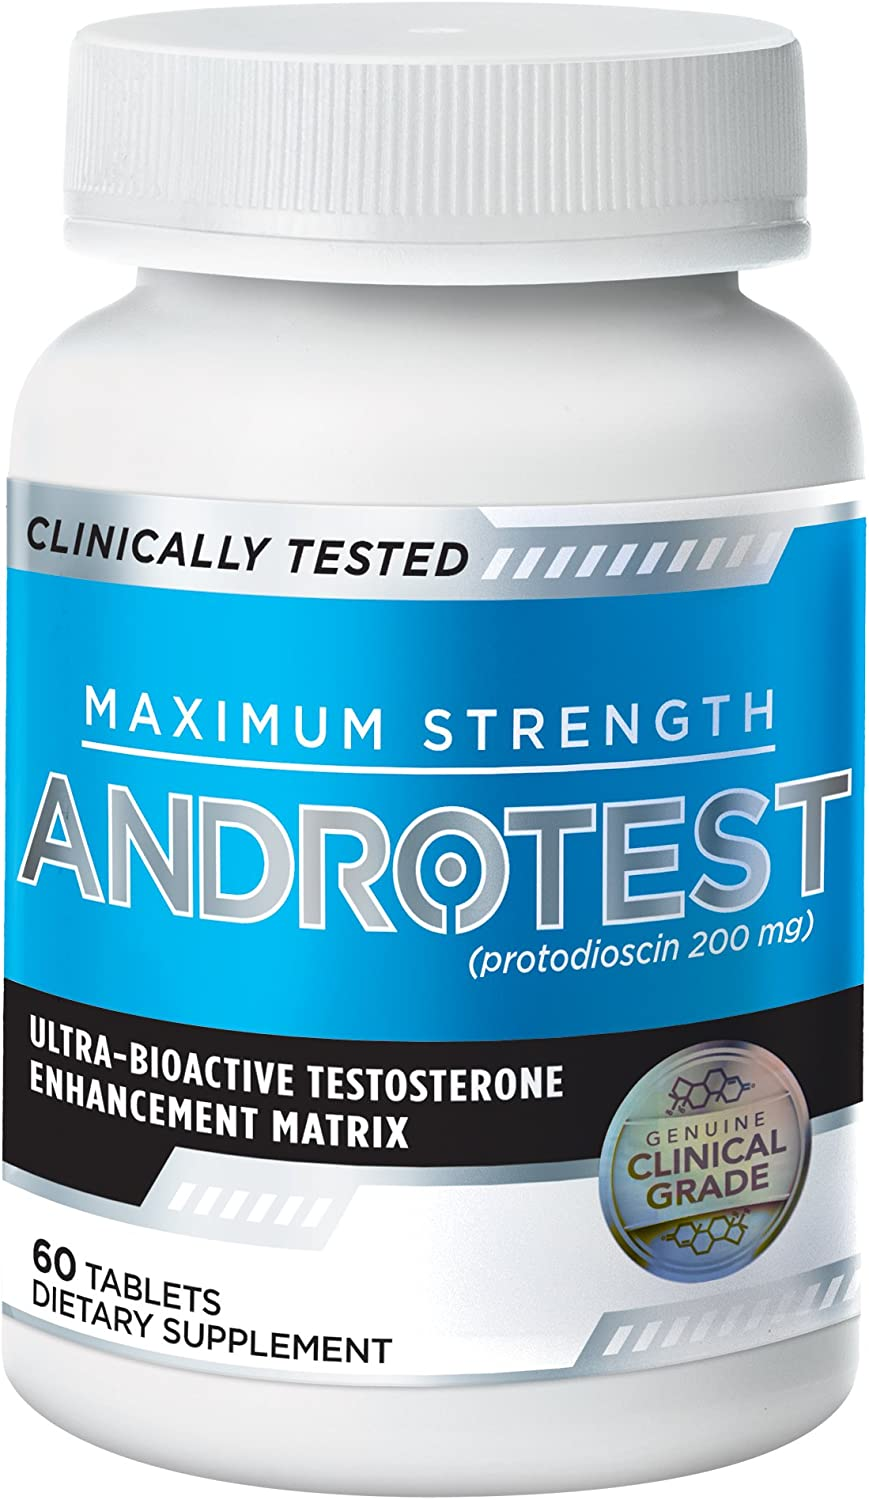 AndroTest - Clinically Validated Testosterone Support Matrix - Up To 275% Increase in Total Testosterone, 60 Tablets